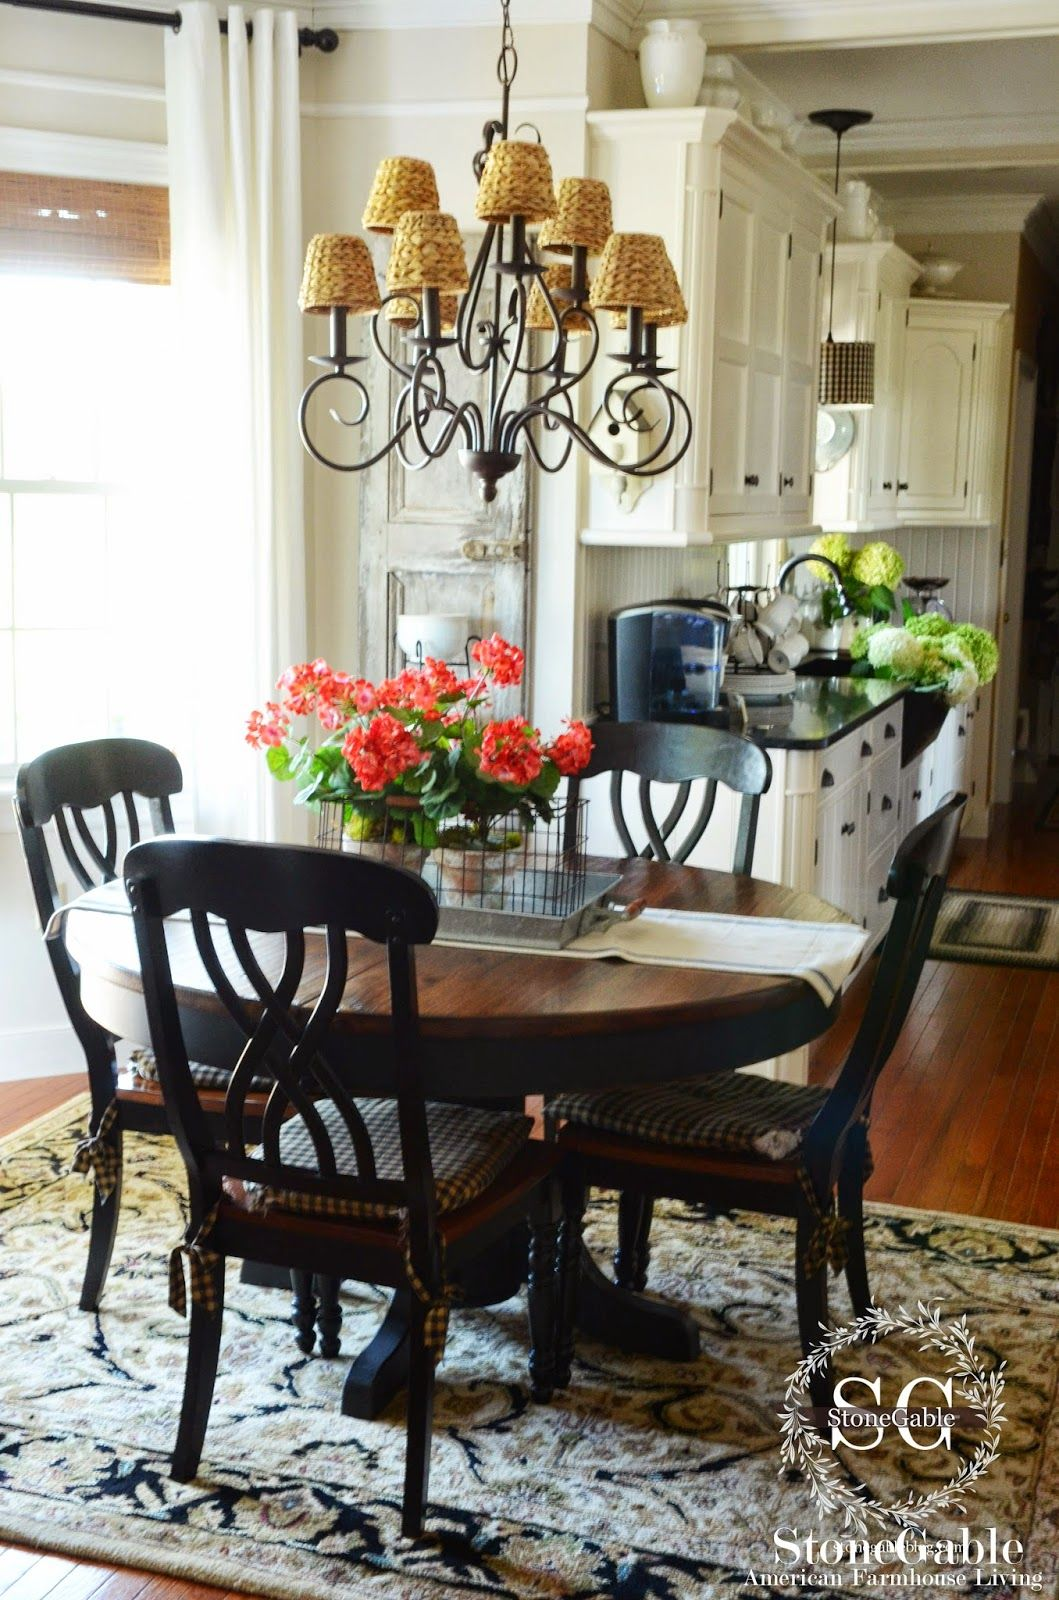 Genial Table And Chair Inspiration With Chandelier By Ballard Design Above For  Kitchen